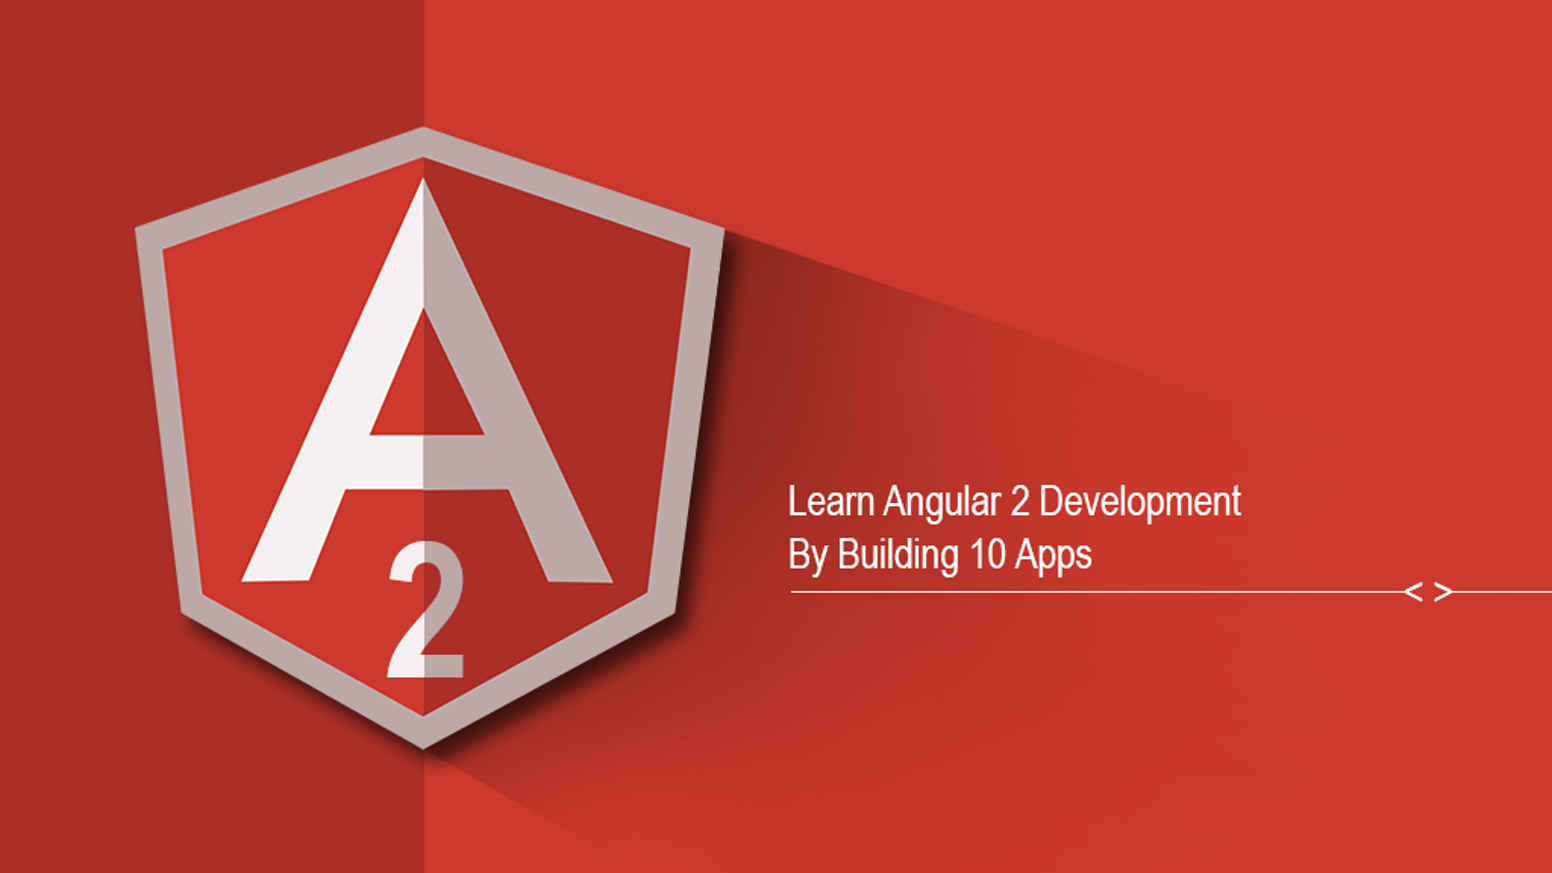 Learn Angular 2 Development By Building Projects - is a online course to learn Angular 2 Development by building 10 real word apps.